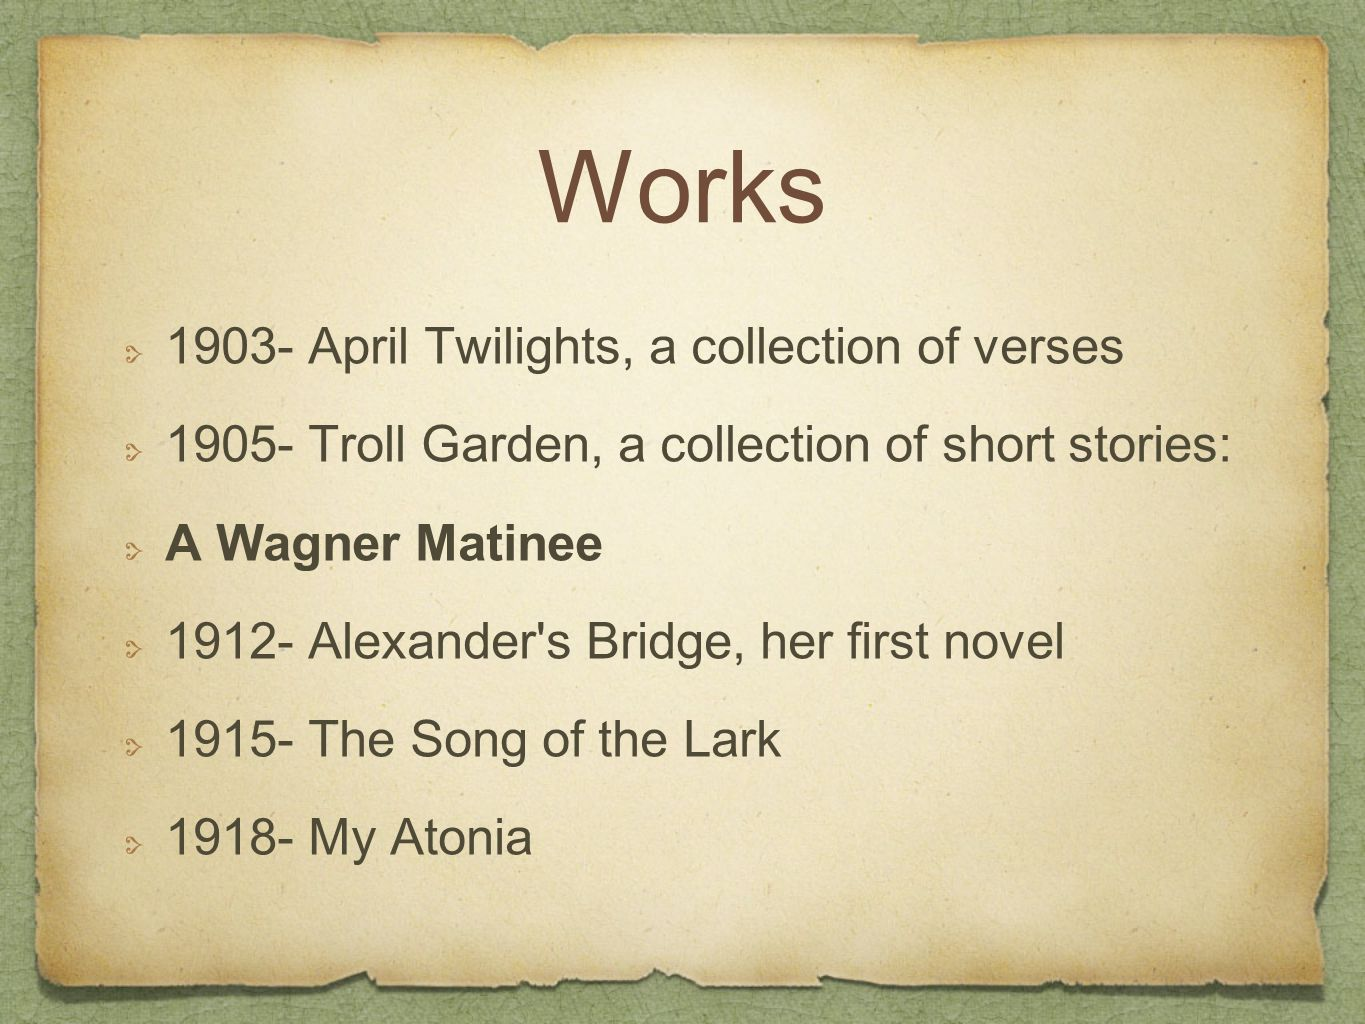 Works 1903- April Twilights, a collection of verses 1905- Troll Garden, a collection of short stories: A Wagner Matinee 1912- Alexander s Bridge, her first novel 1915- The Song of the Lark 1918- My Atonia